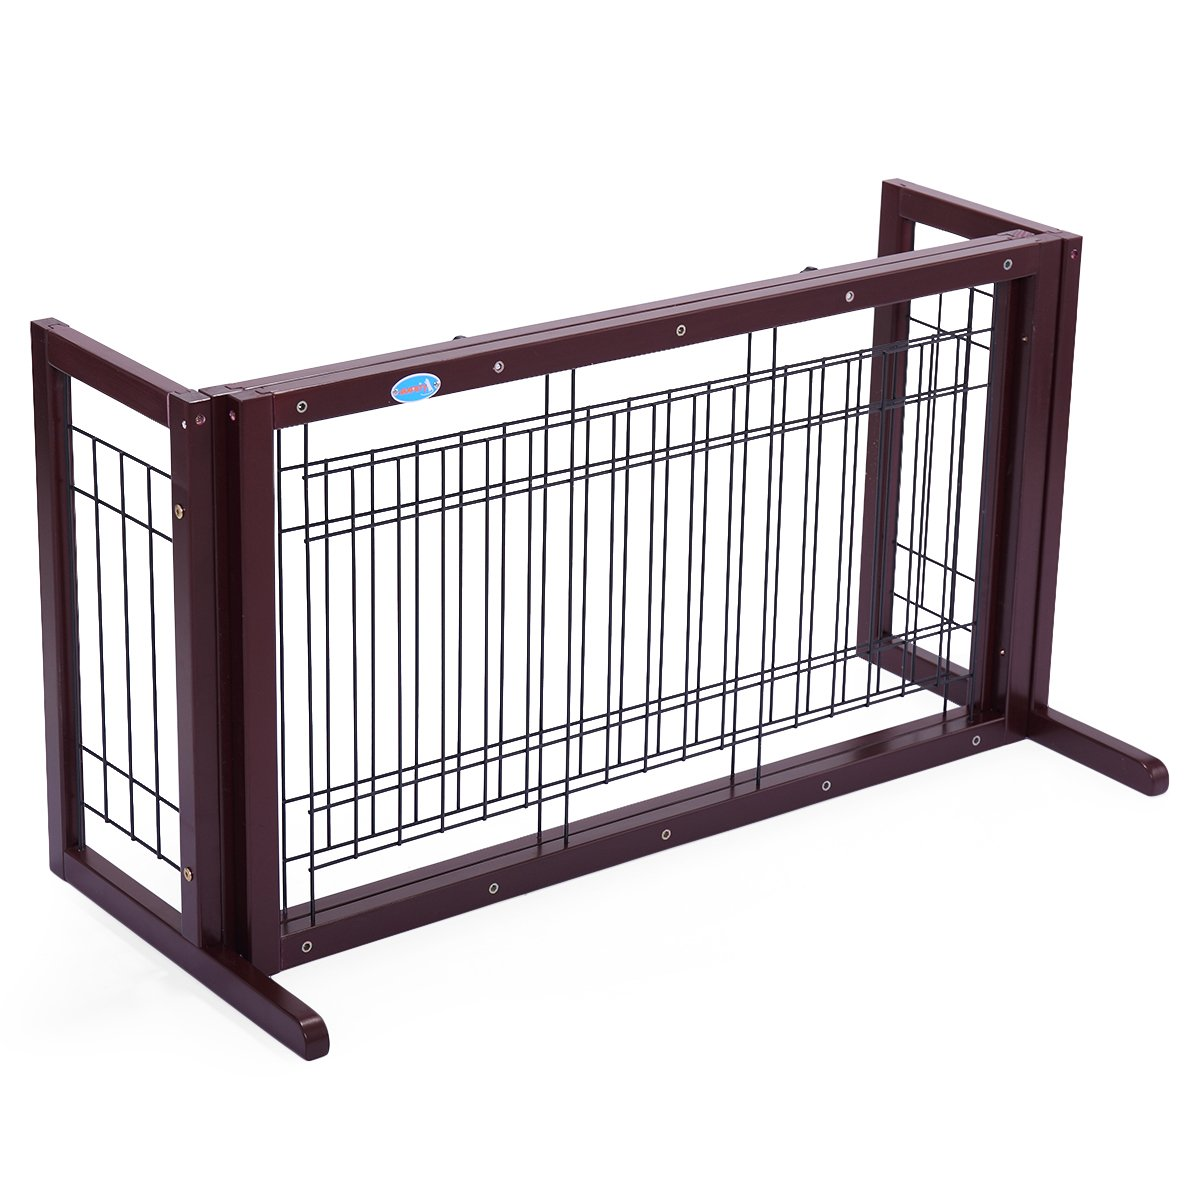 JAXPETY Pet Fence Gate Free Standing Adjustable Dog Gate Indoor Solid Wood Construction